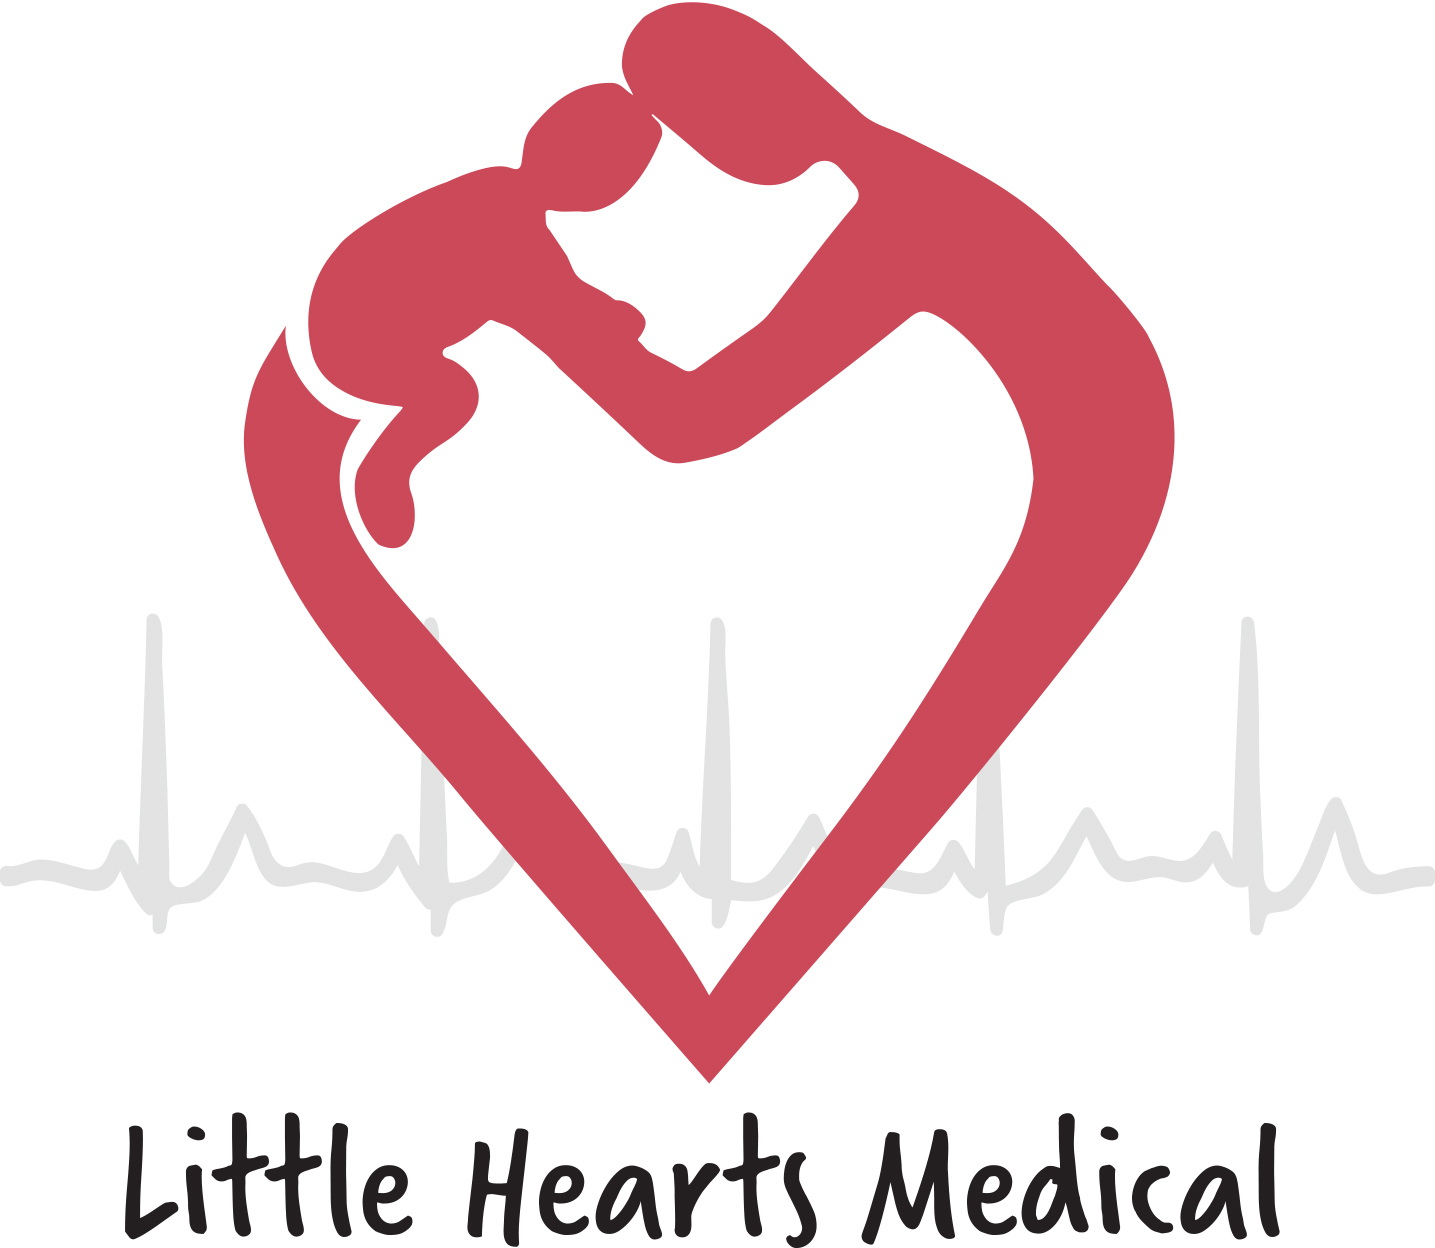 About Little Hearts Medical